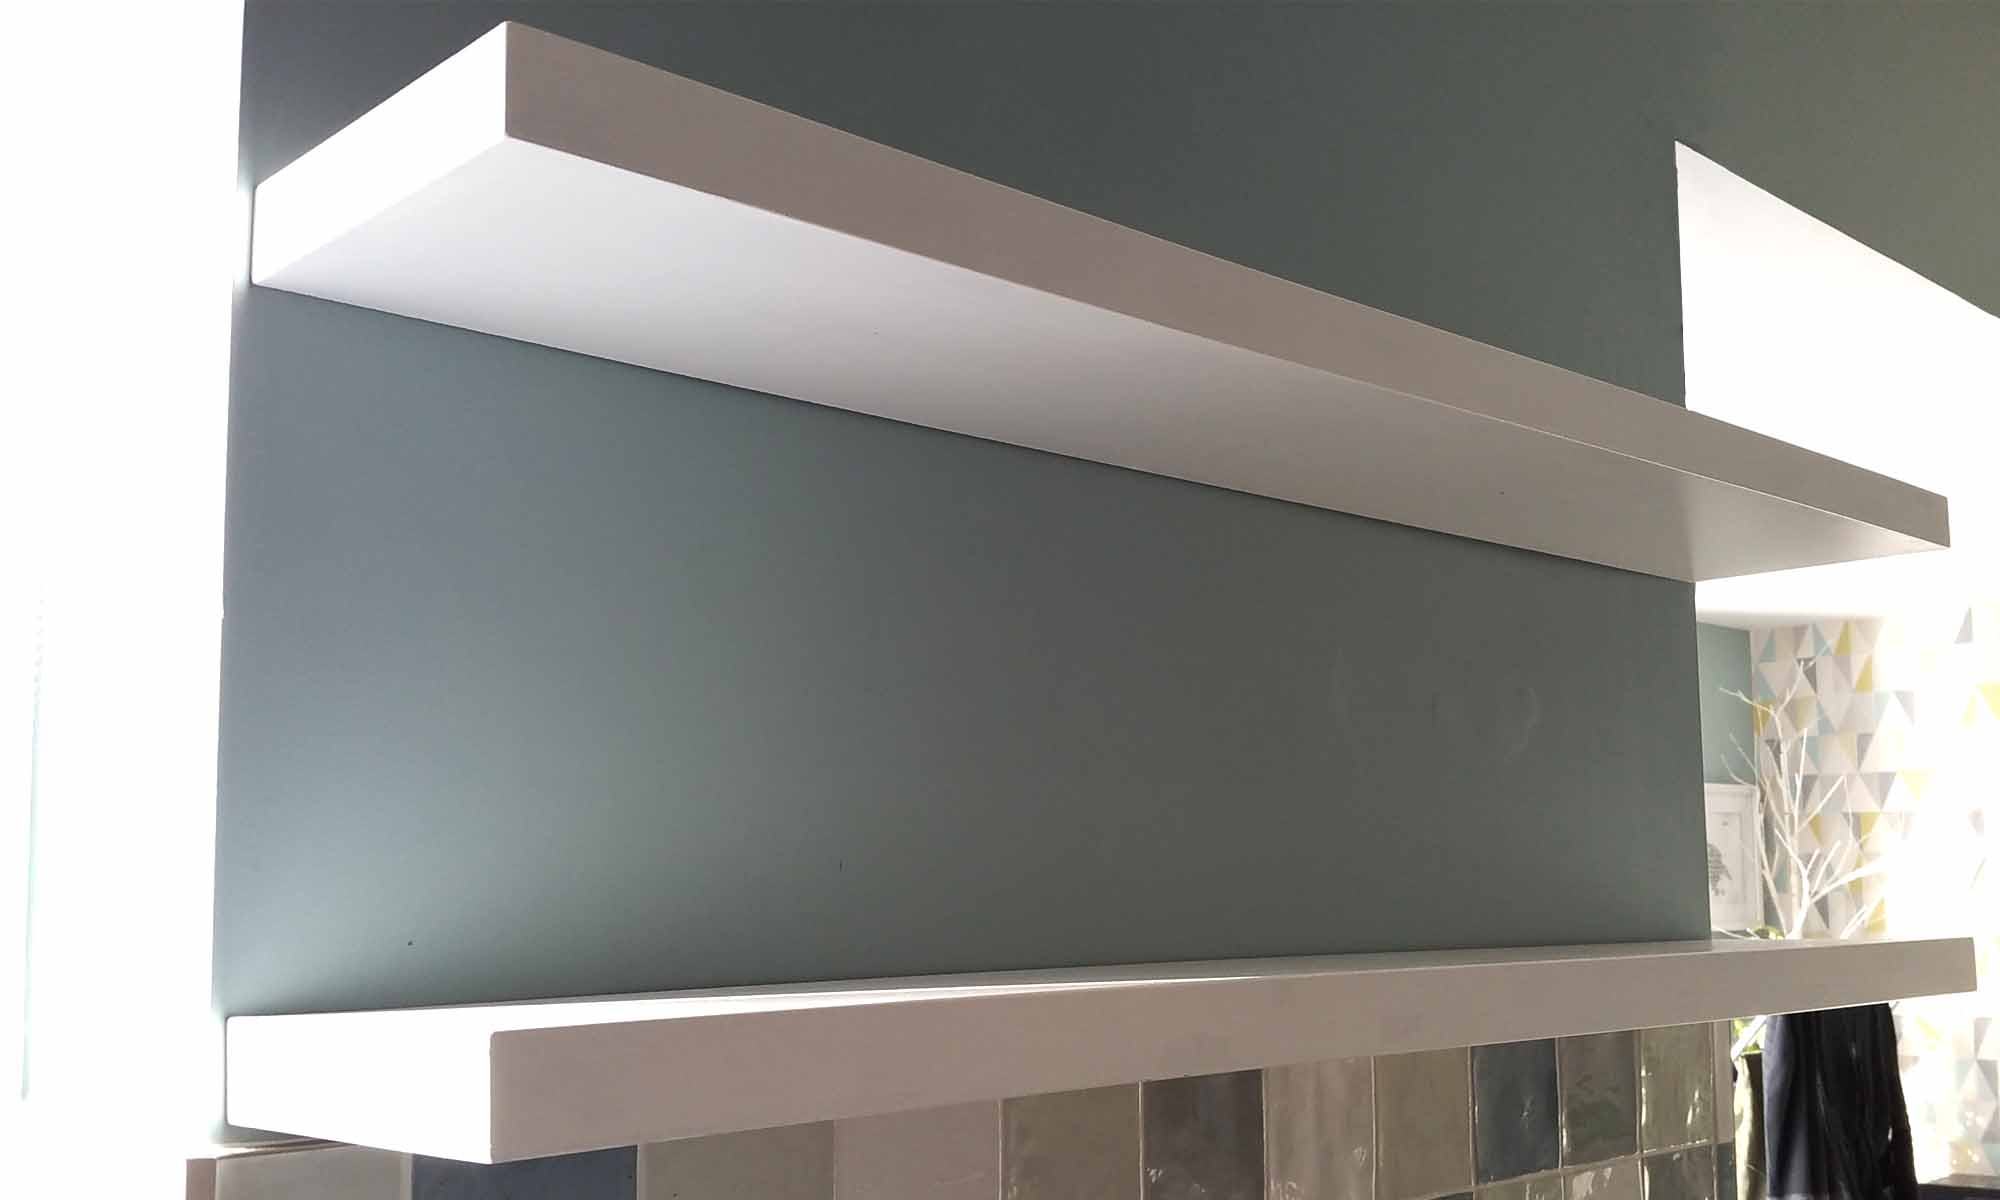 making white gloss floating shelves gosforth handyman whiteglossfloatingshelves grey xbox wall shelf small bathroom sink open closet organizer diy drawer elastilon underlay